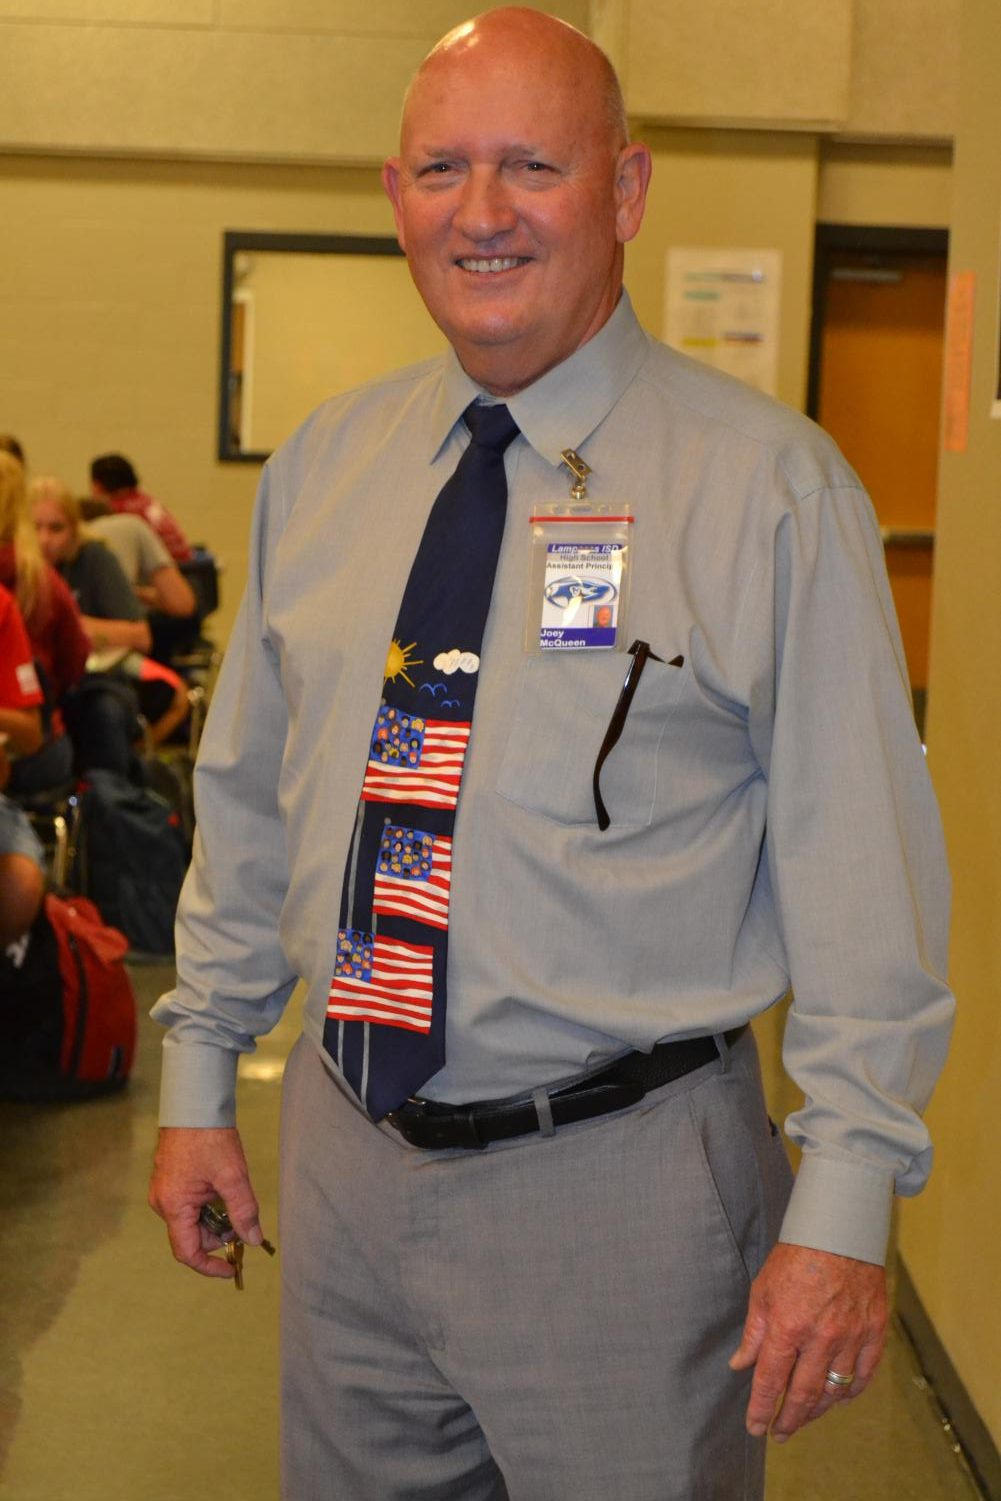 Assistant Principal Joey McQueen poses in the cafeteria with his patriotic neck tie on 'Merica Monday.